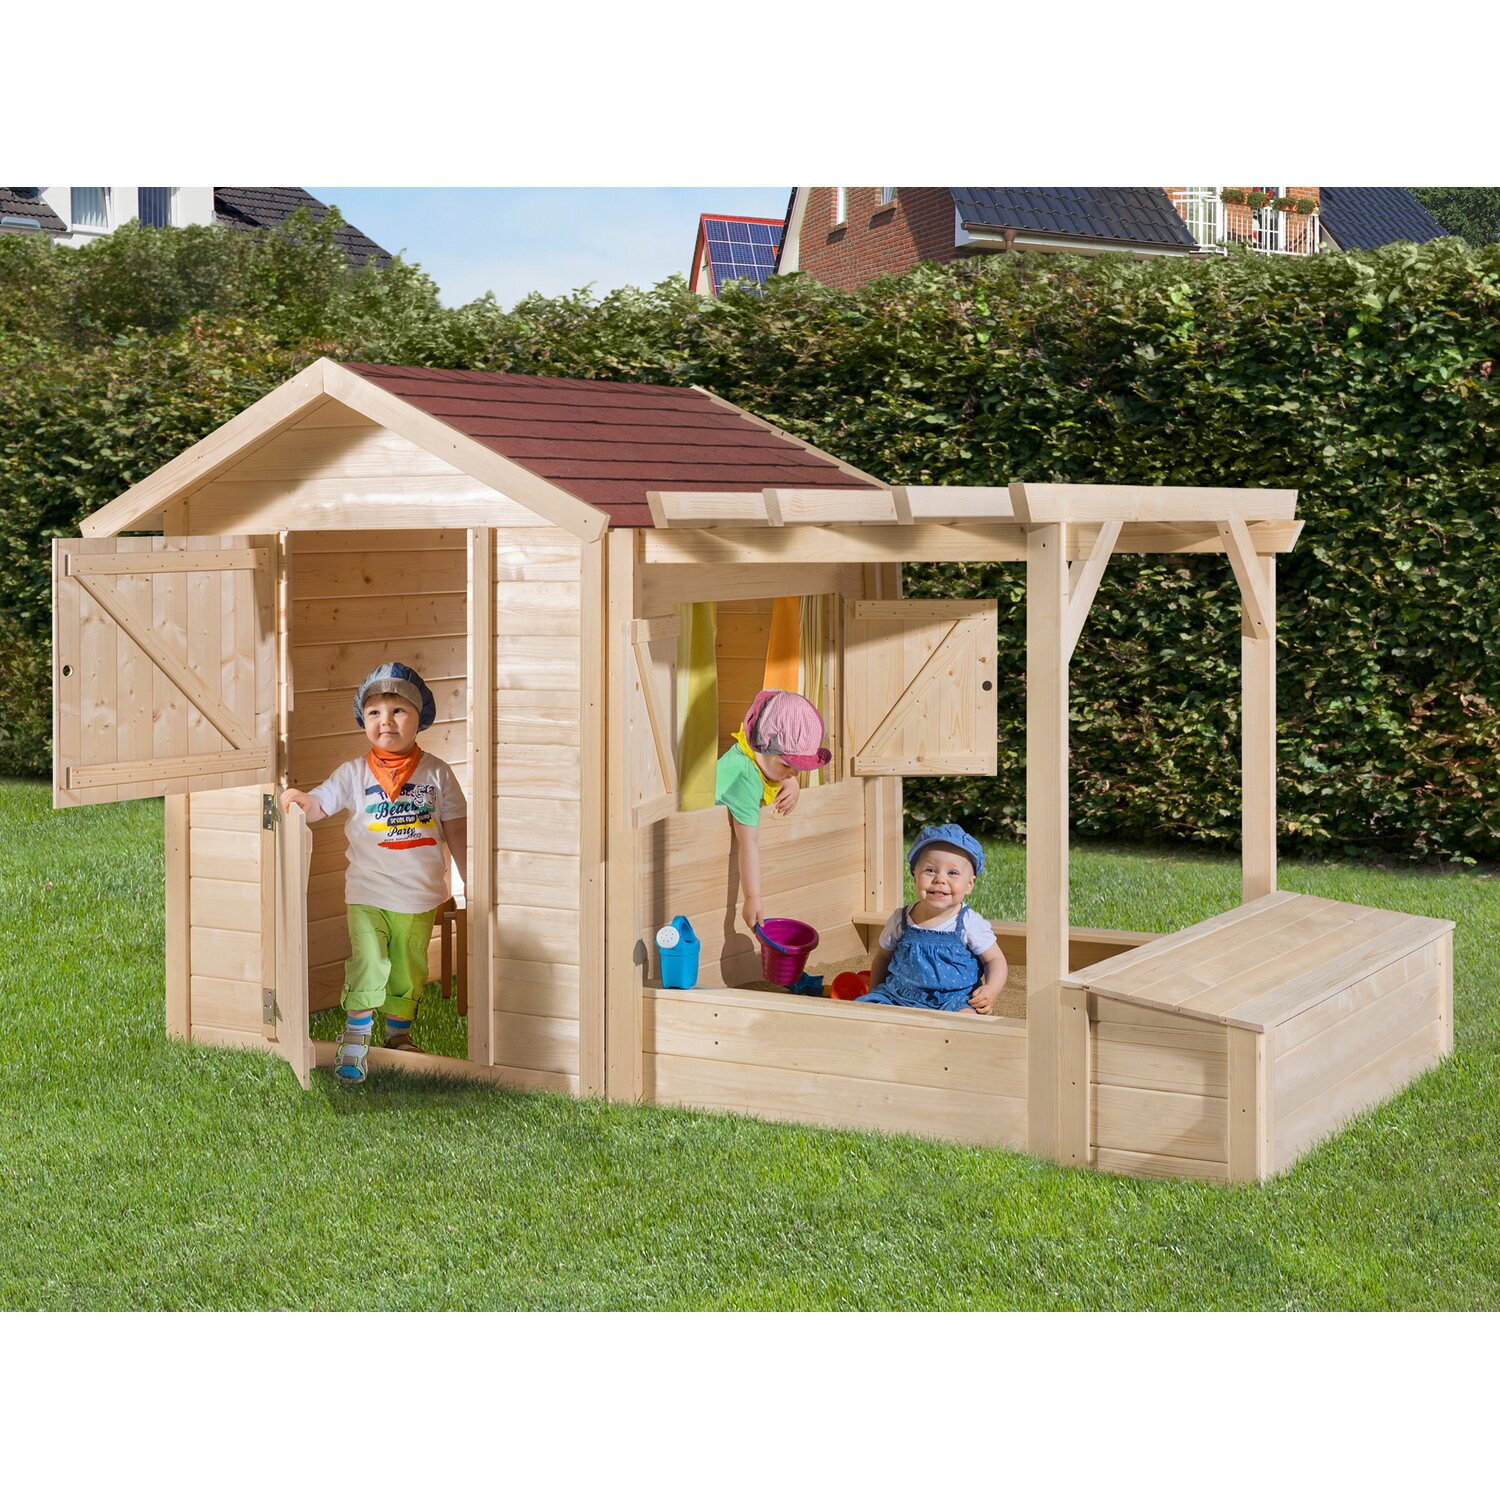 gartenhaus kinderspielhaus holz schweiz my blog. Black Bedroom Furniture Sets. Home Design Ideas